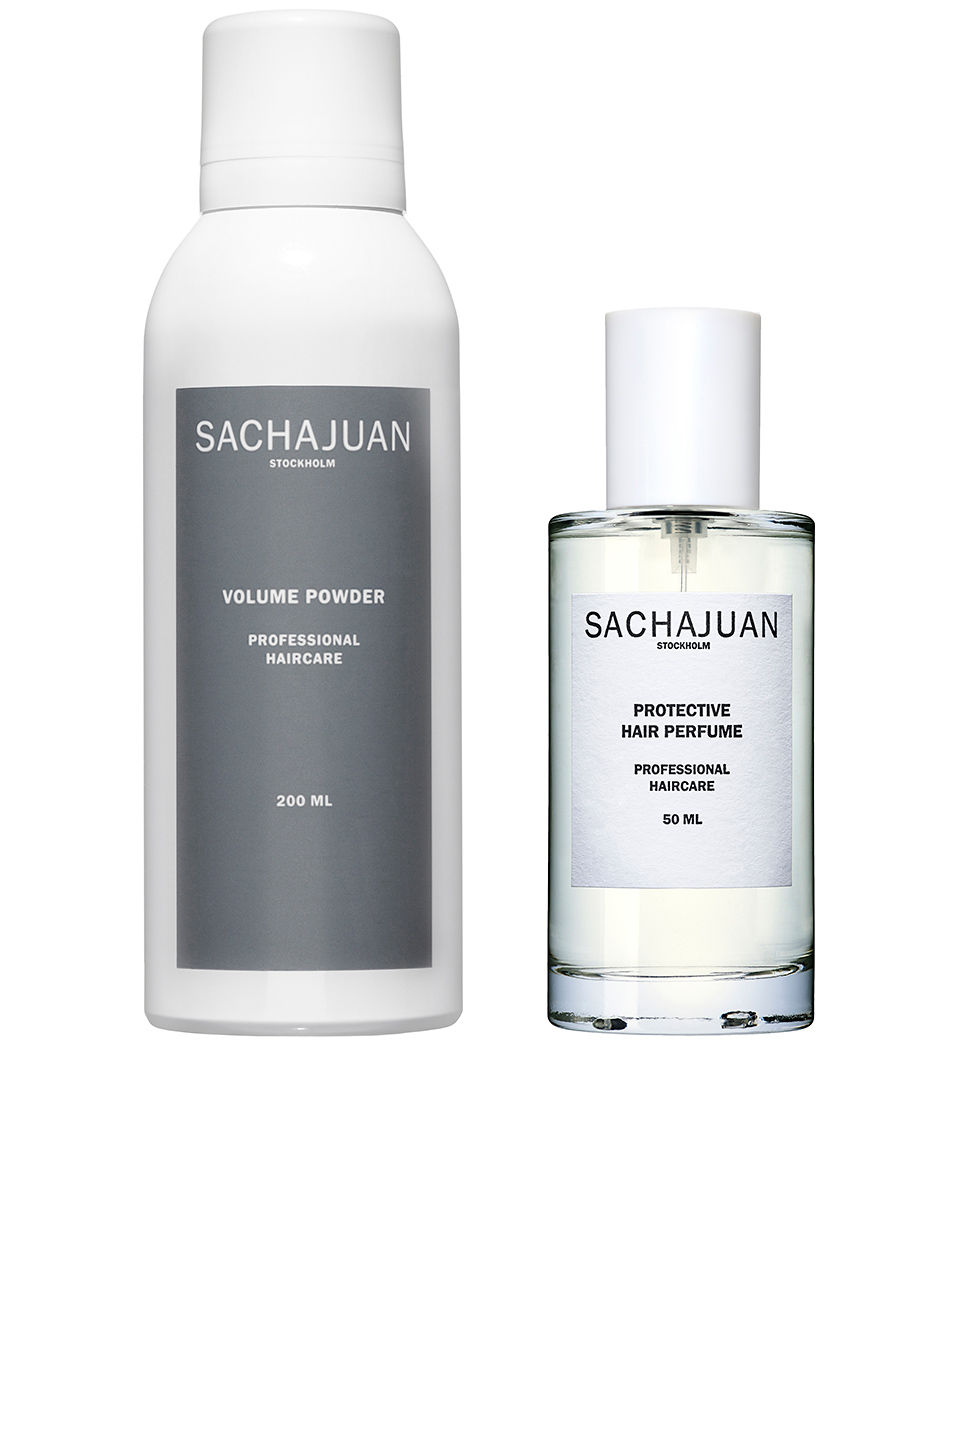 SACHAJUAN Refreshed Hair Box in